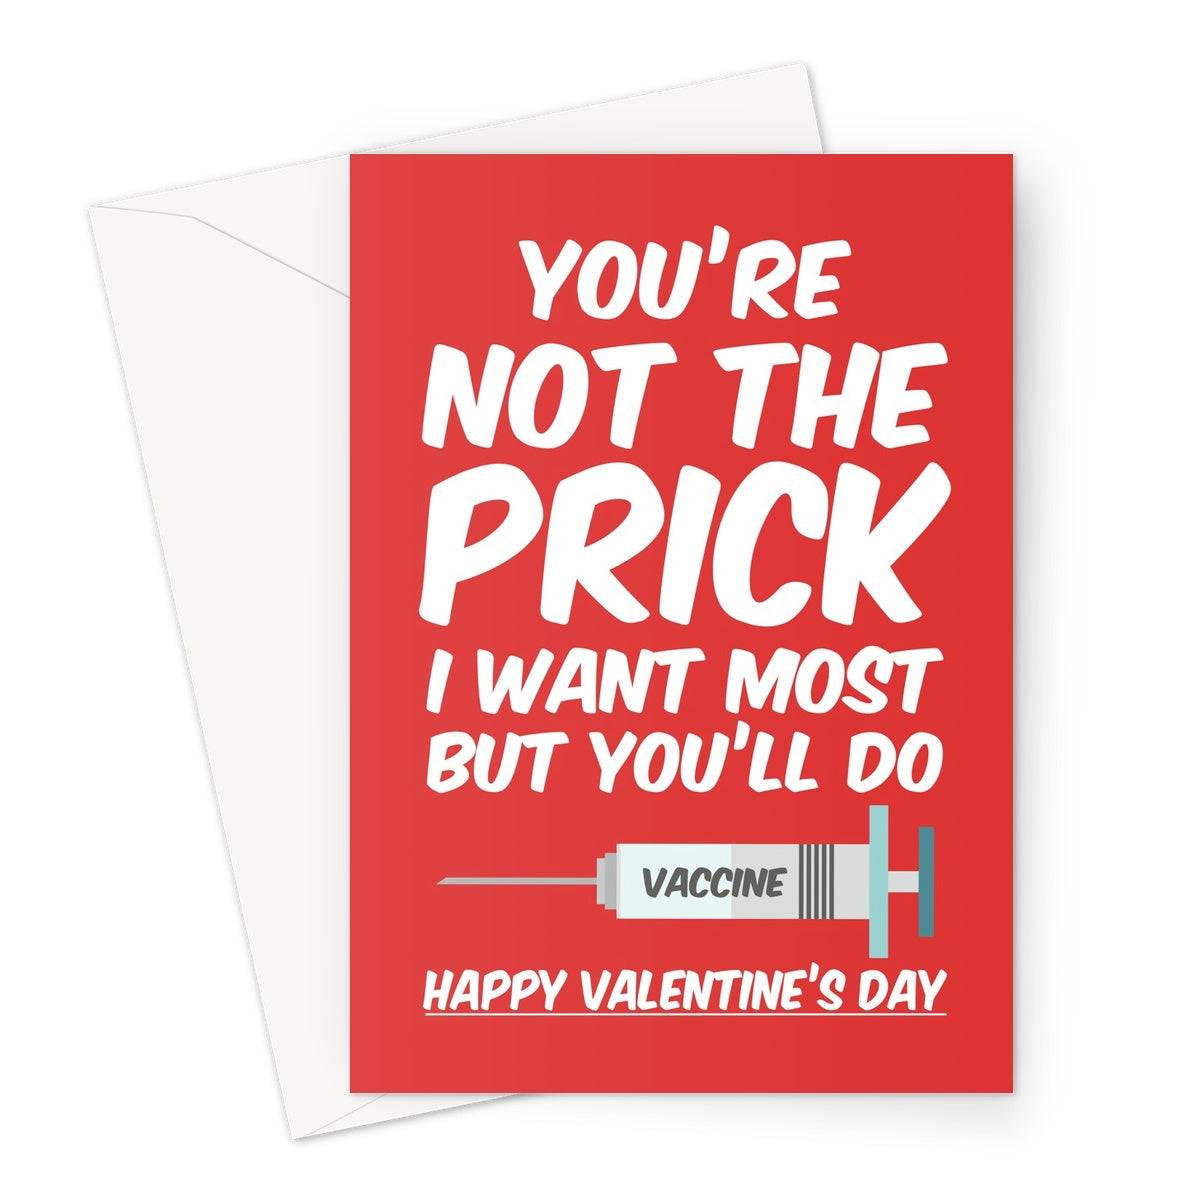 You're Not The Prick I Want Most But You'll Do Funny Valentine's Day Love Vaccine Jab Covid Rude Lockdown Greeting Card